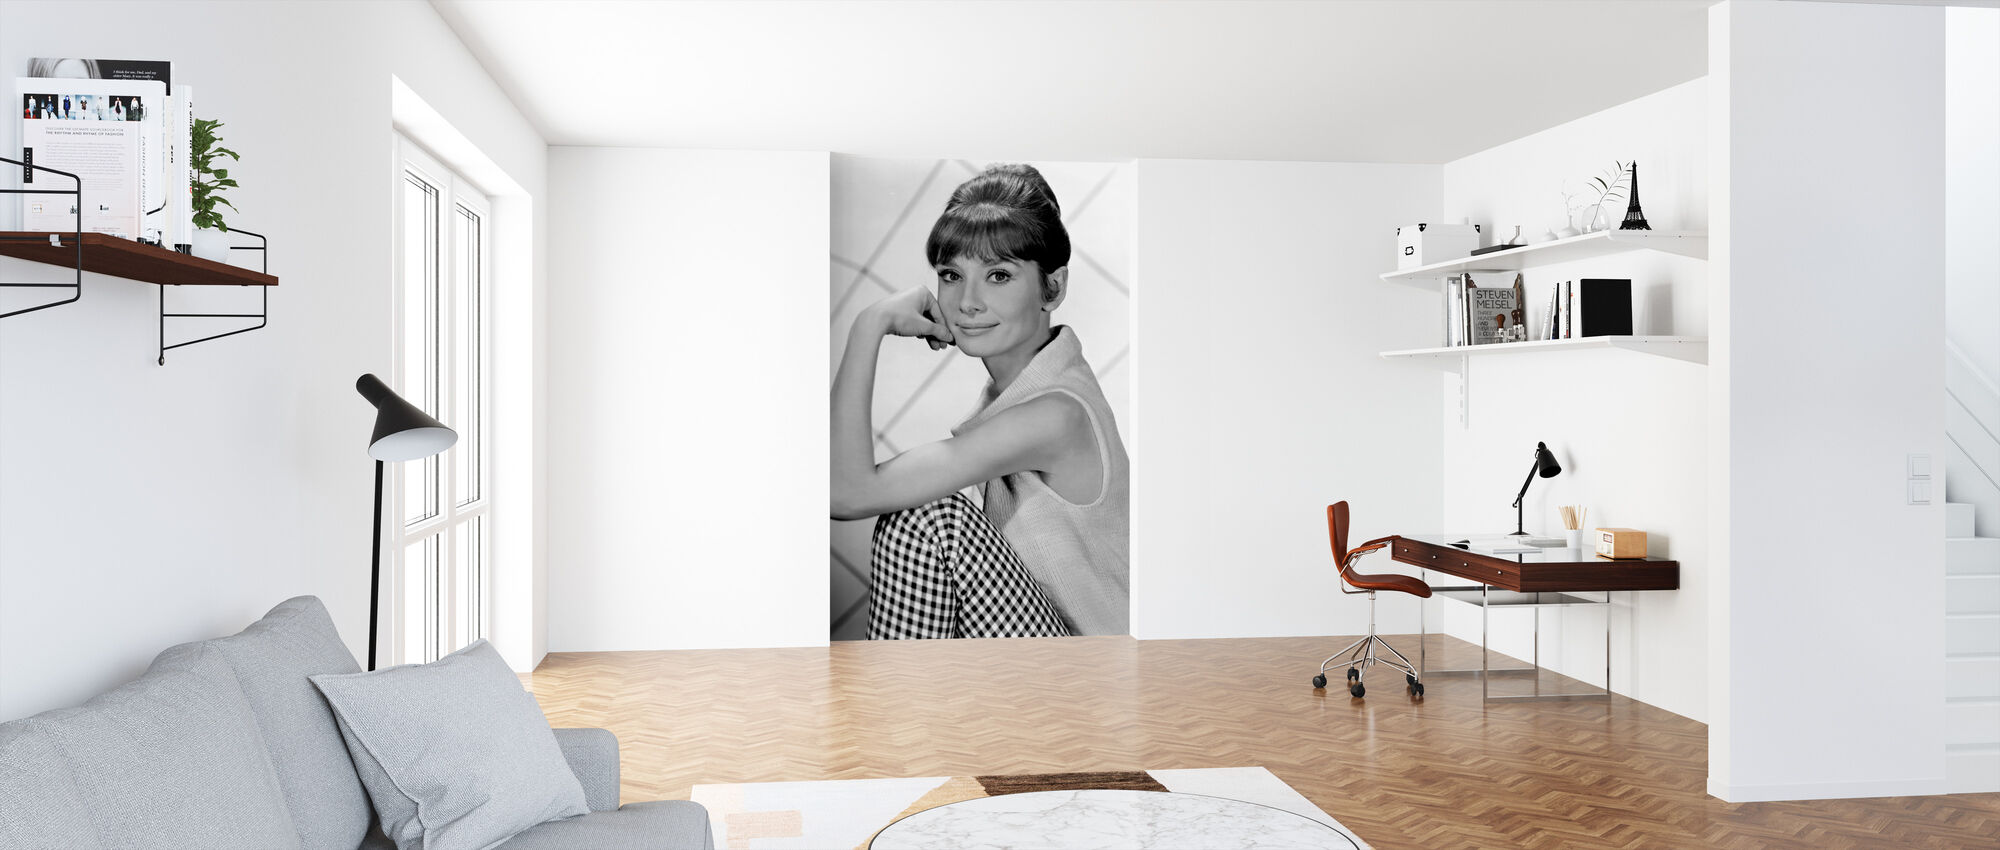 Aud 1960 - Wallpaper - Office